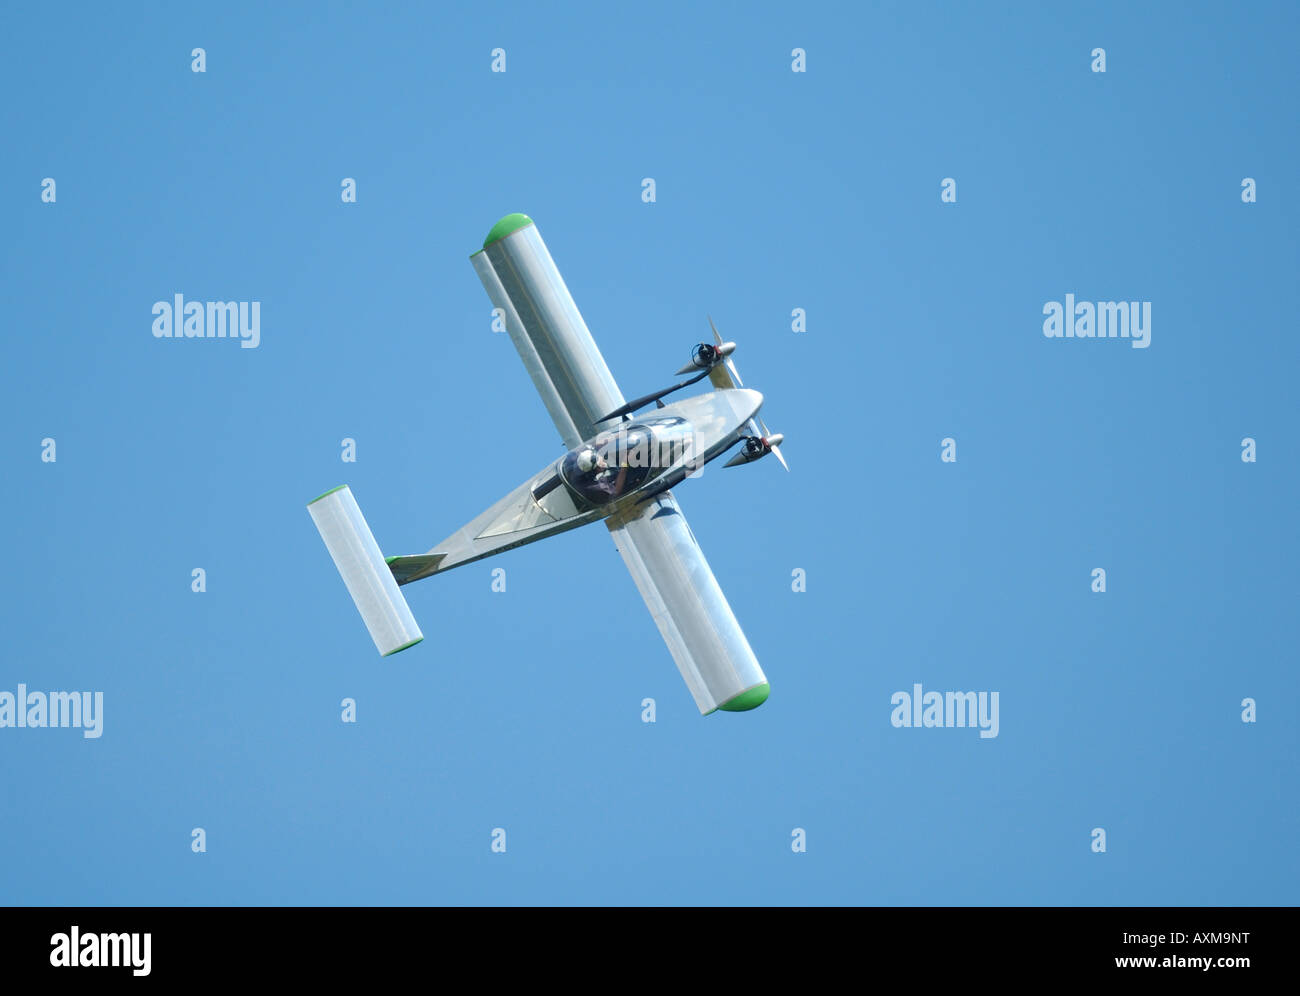 Aircraft worlds smallest manned The Ten